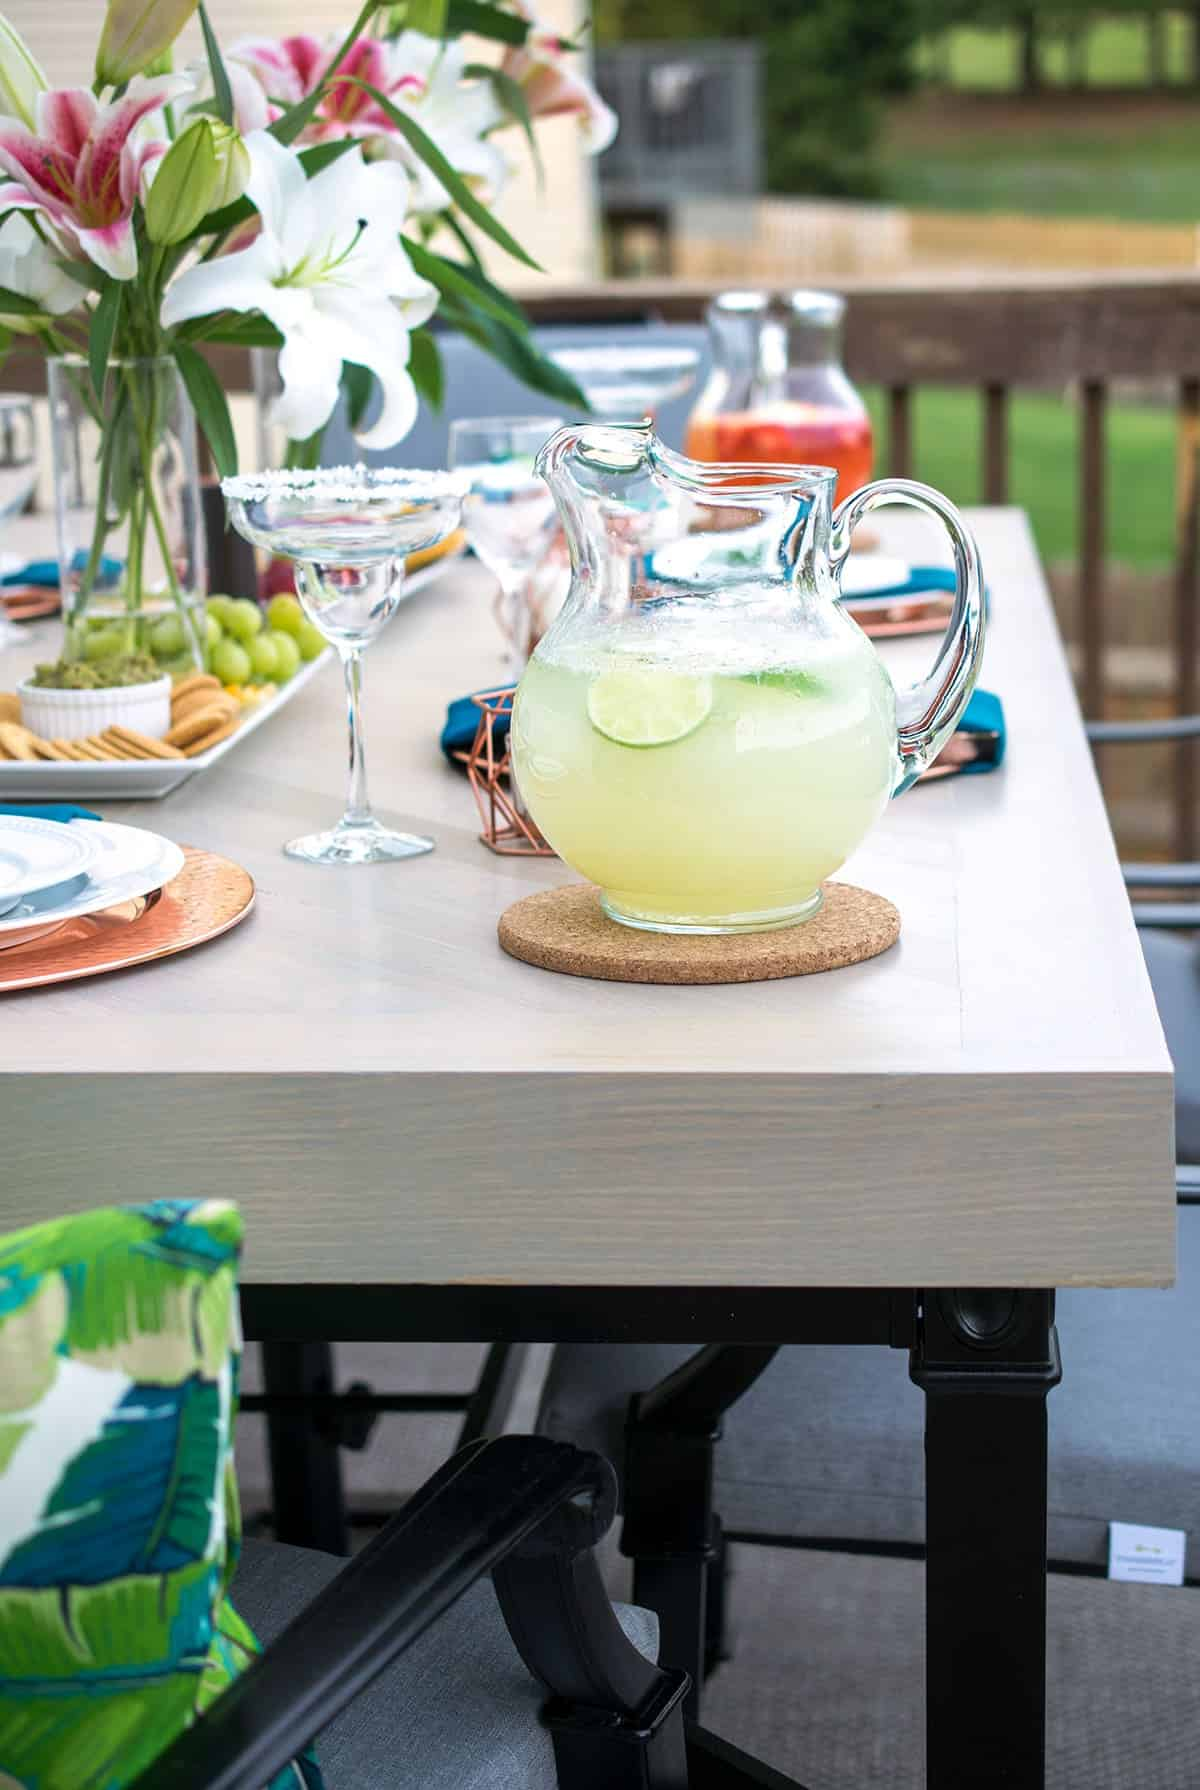 Refinished outdoor patio table and chairs with elegant tropical table settings.